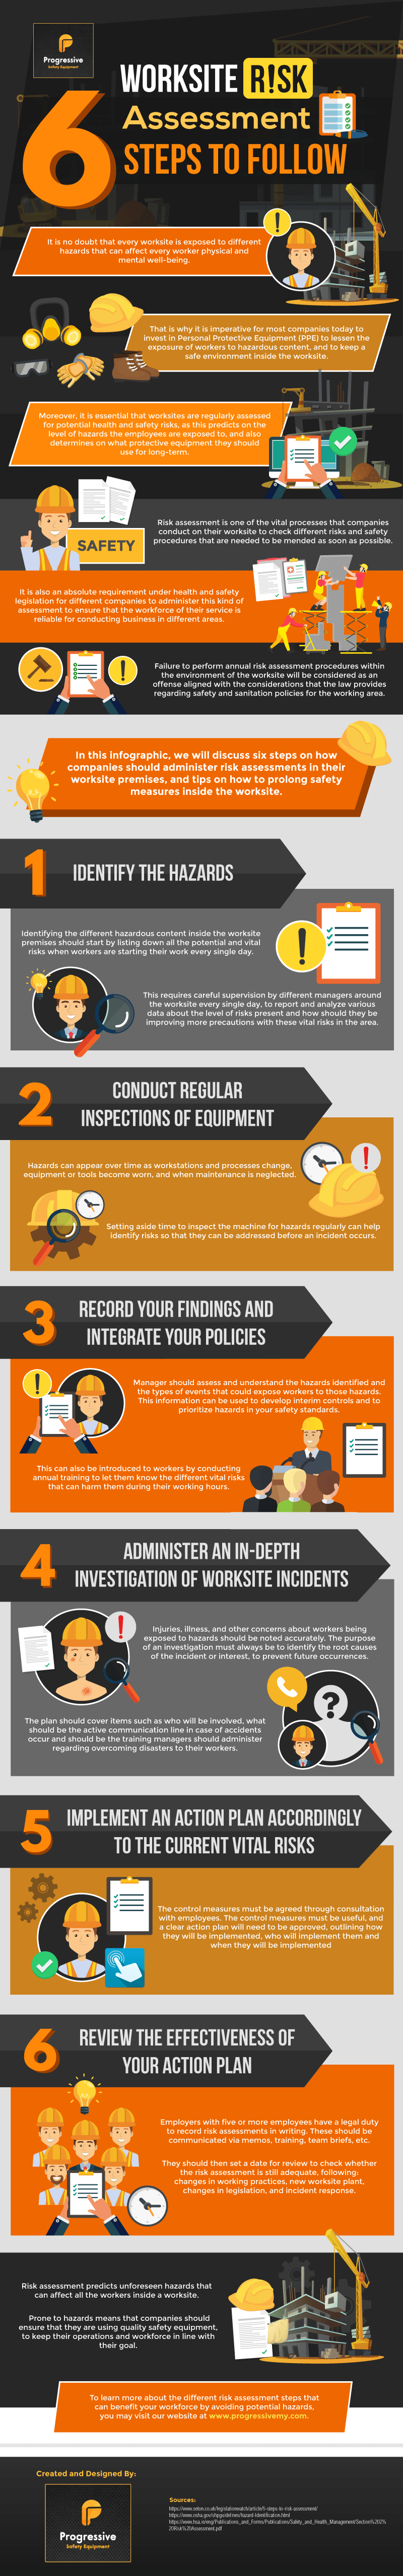 Worksite Risk Assessment- 6 Steps to Follow